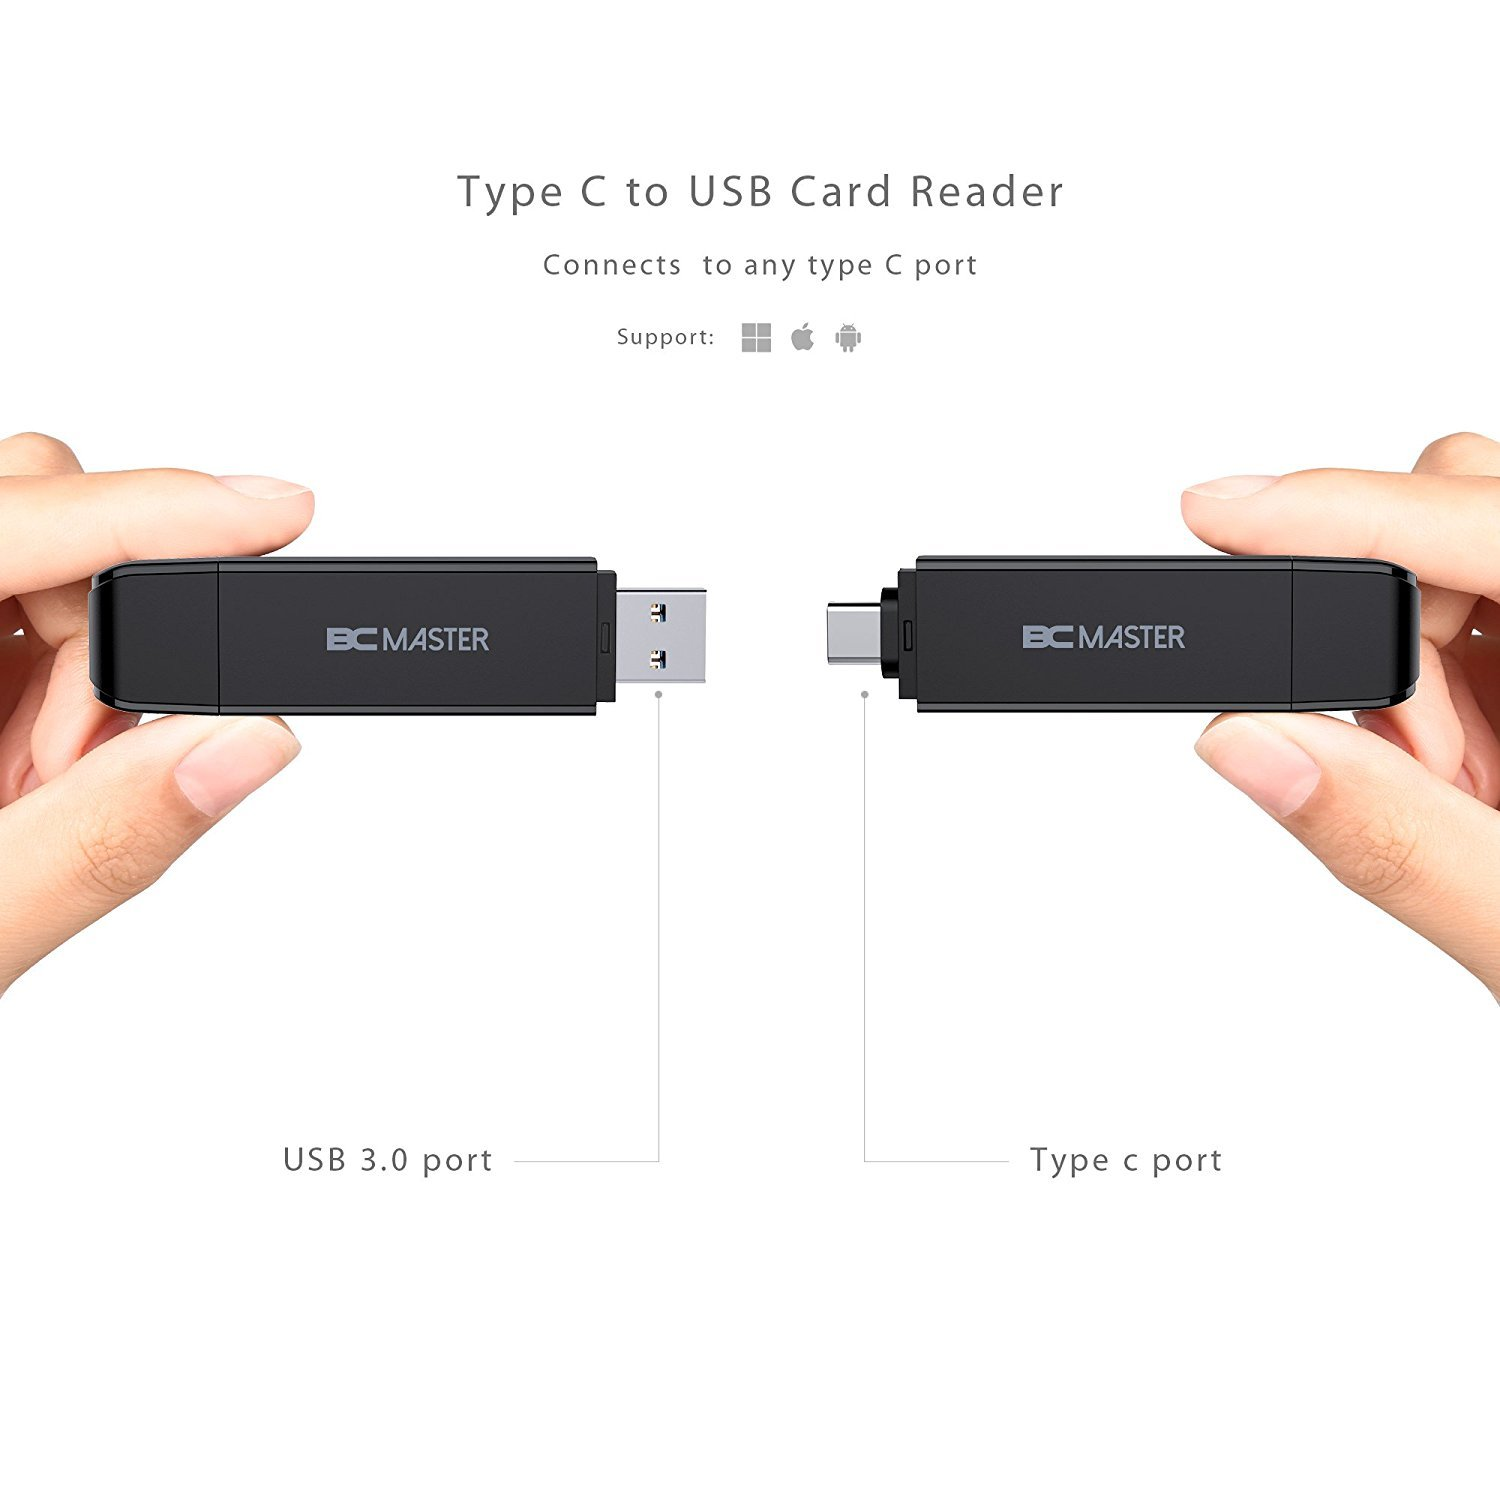 SD Card Reader Micro SD Card Reader for Macbook Mobile Phones SDHC, SDXC, 2 in 1, USB 3.0, Type C, OTG Adapter Memory Card Reader